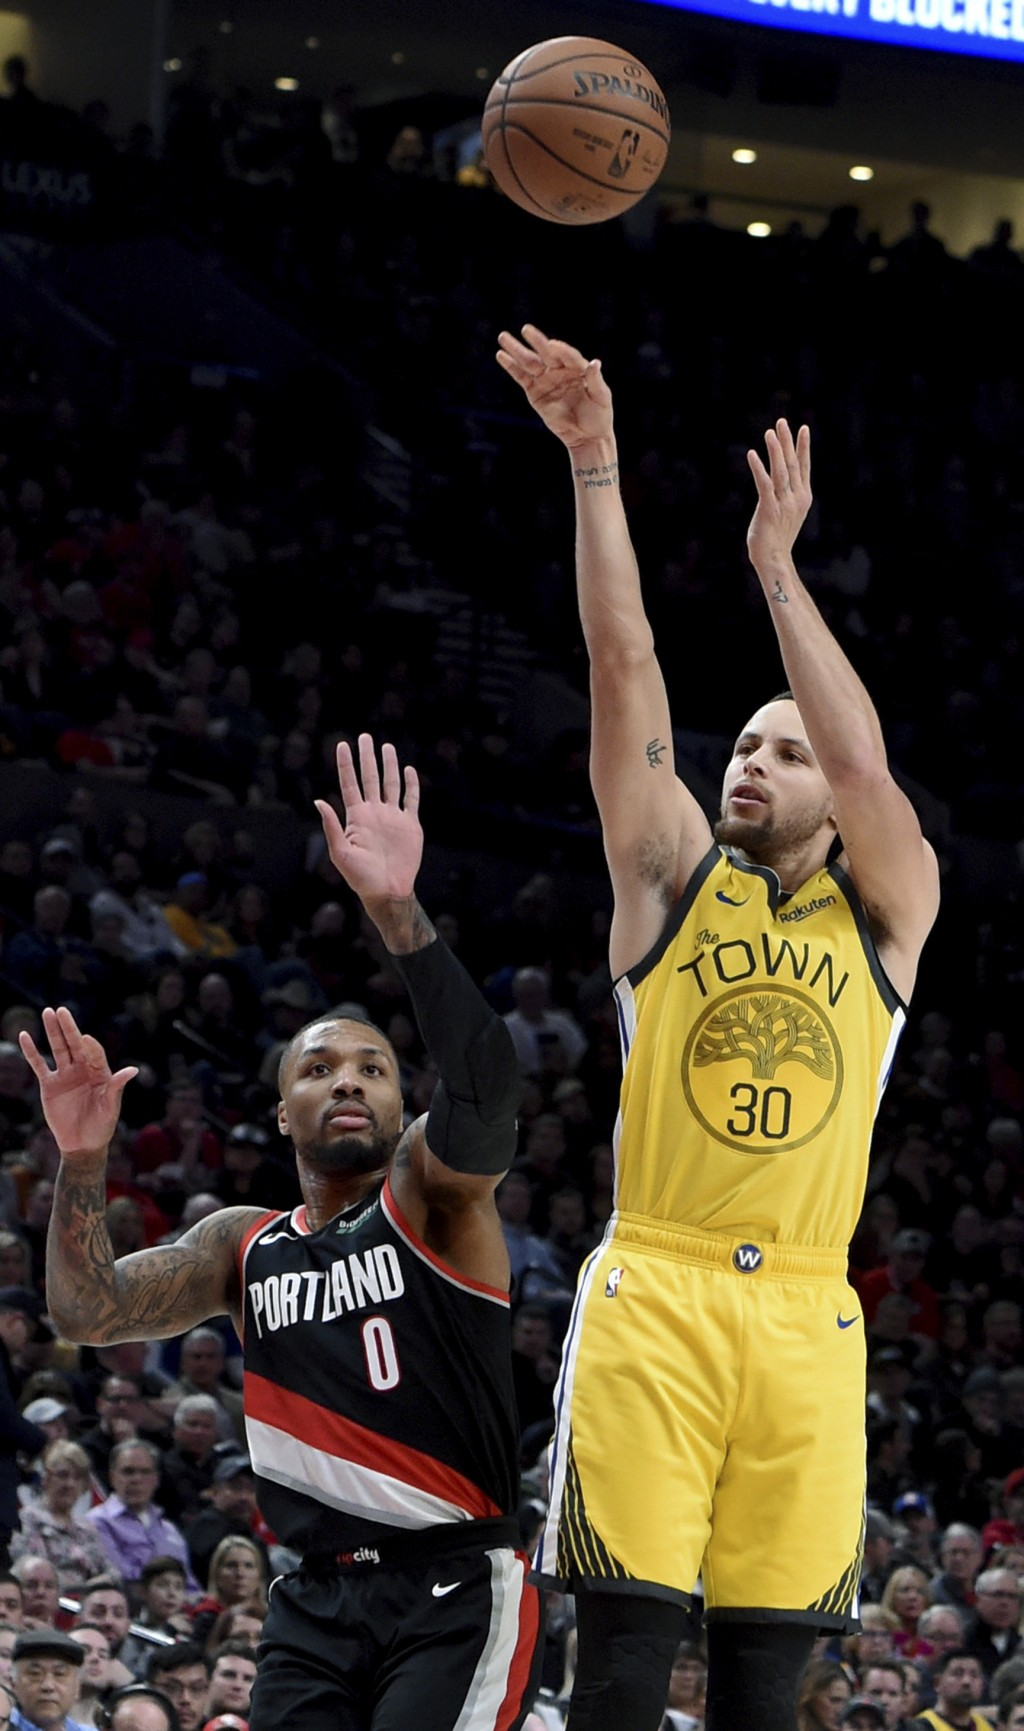 Golden State Warriors guard Stephen Curry, right, hits a shot next to Portland Trail Blazers guard Damian Lillard during the first half of an NBA bask